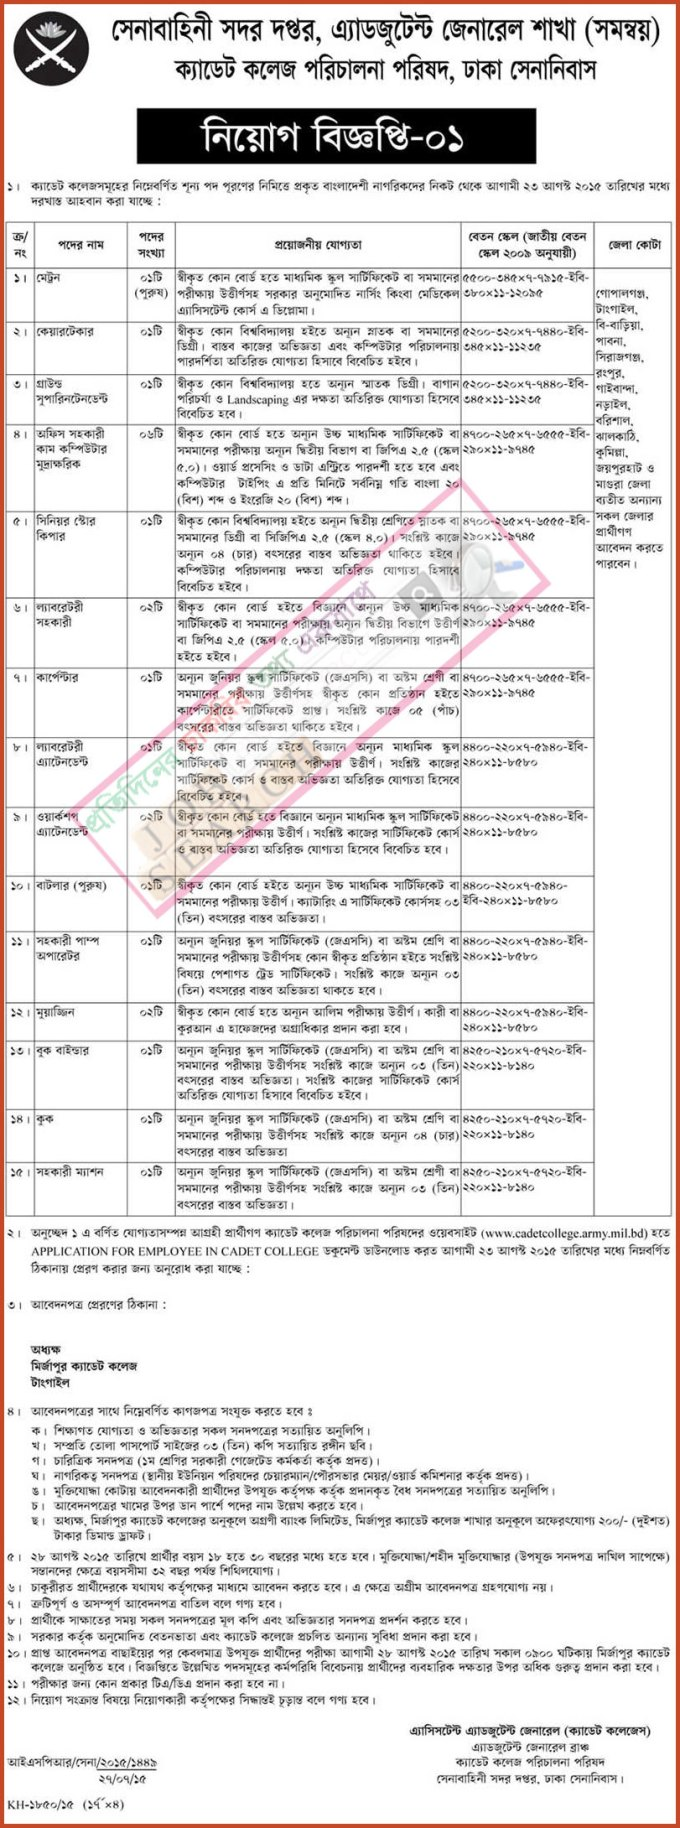 cadet-college-job-circular-1